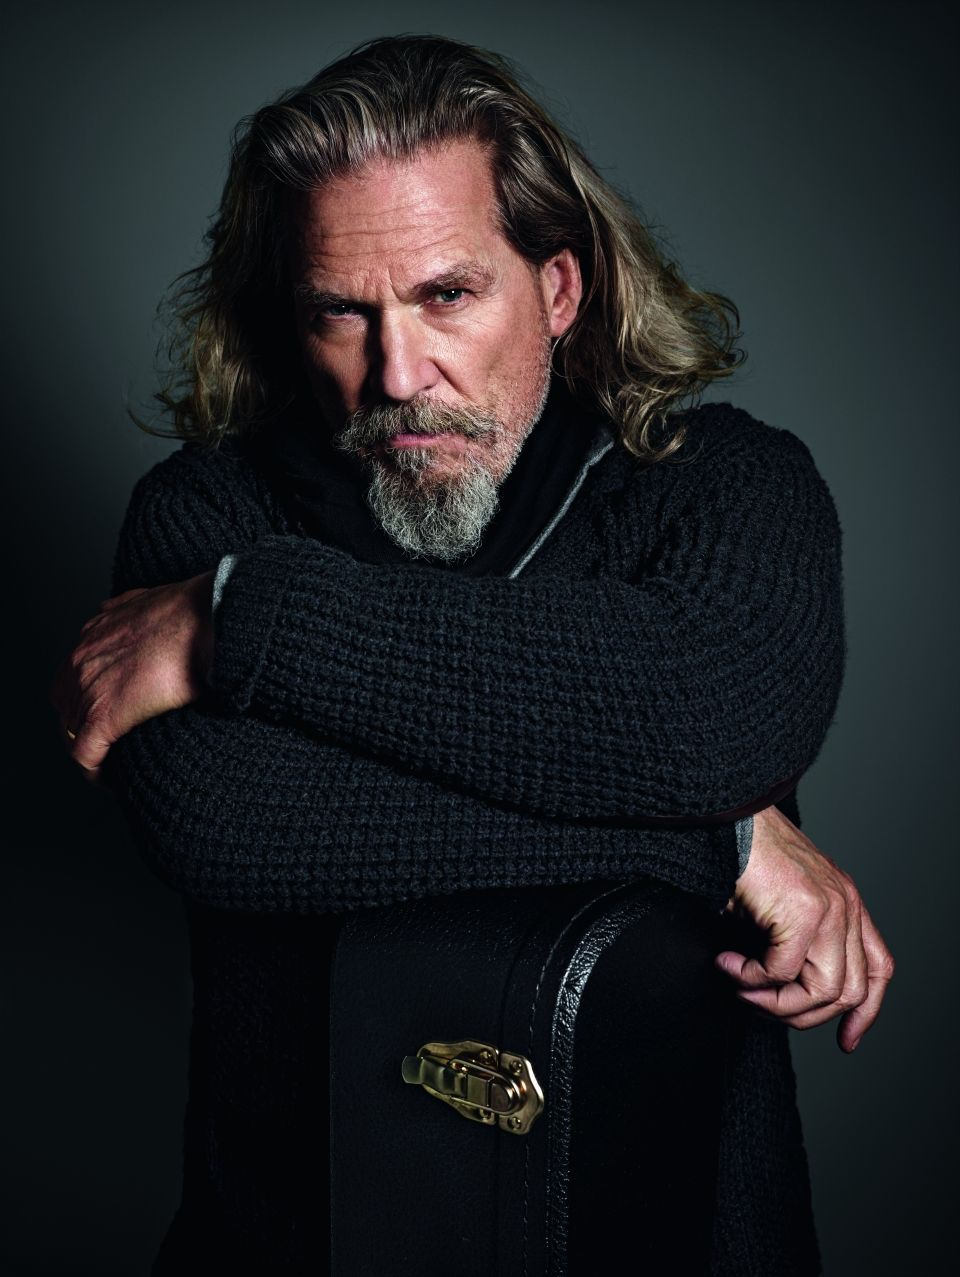 jeff bridges wifejeff bridges young, jeff bridges iron man, jeff bridges height, jeff bridges wife, jeff bridges music, jeff bridges filmi, jeff bridges movies, jeff bridges кинопоиск, jeff bridges wiki, jeff bridges imdb, jeff bridges kinopoisk, jeff bridges films, jeff bridges crossfit, jeff bridges fan, jeff bridges dance, jeff bridges series, jeff bridges song, jeff bridges club, jeff bridges interview, jeff bridges be here soon